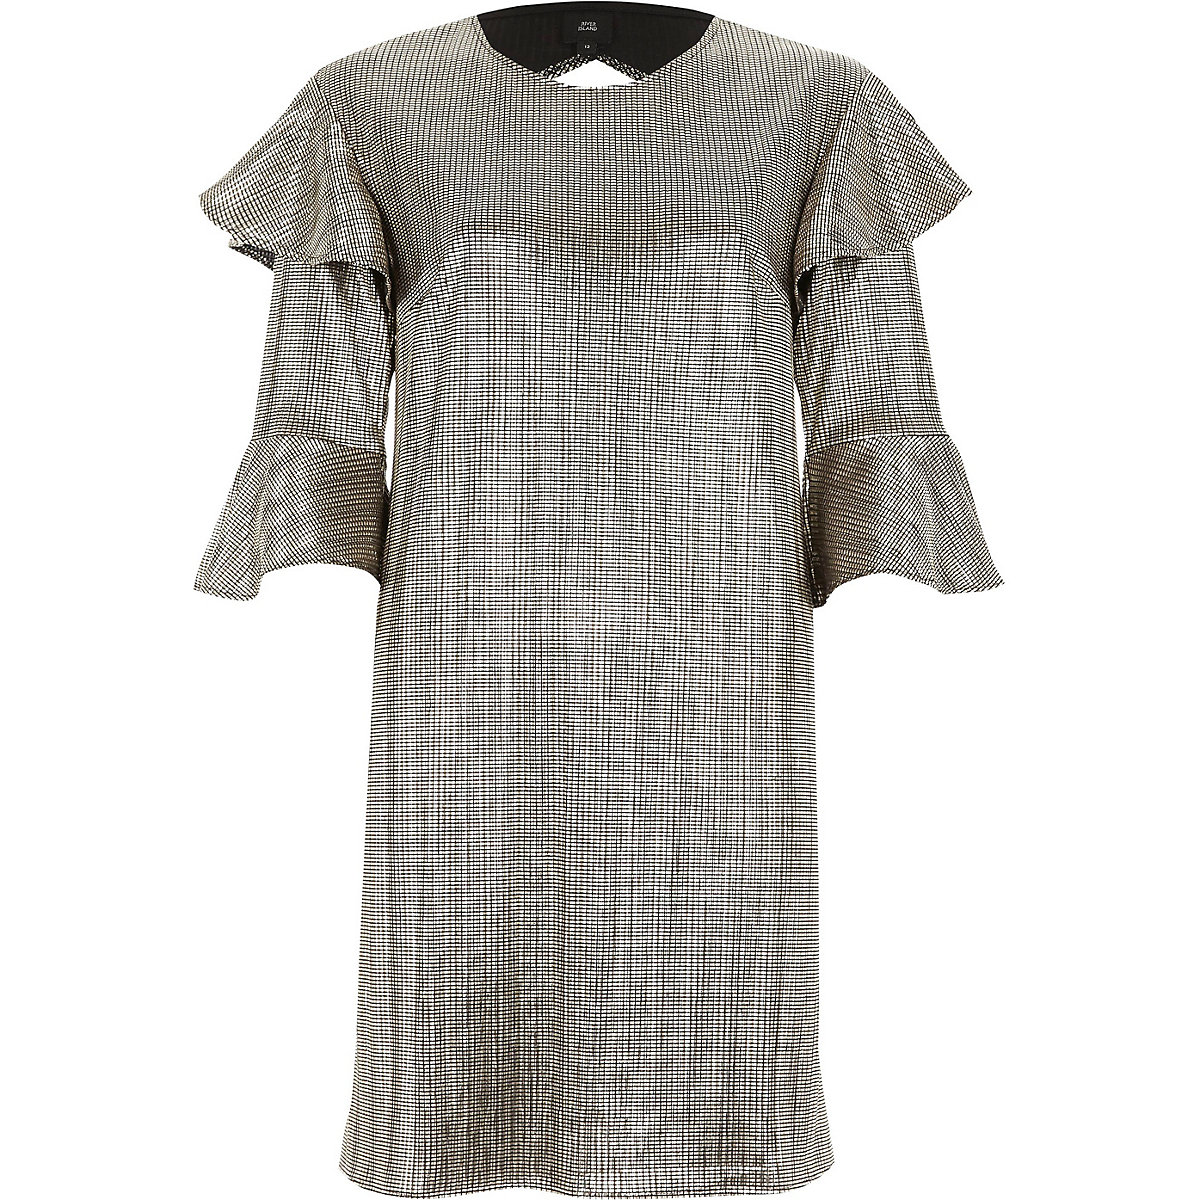 Gold foil frill T-shirt dress